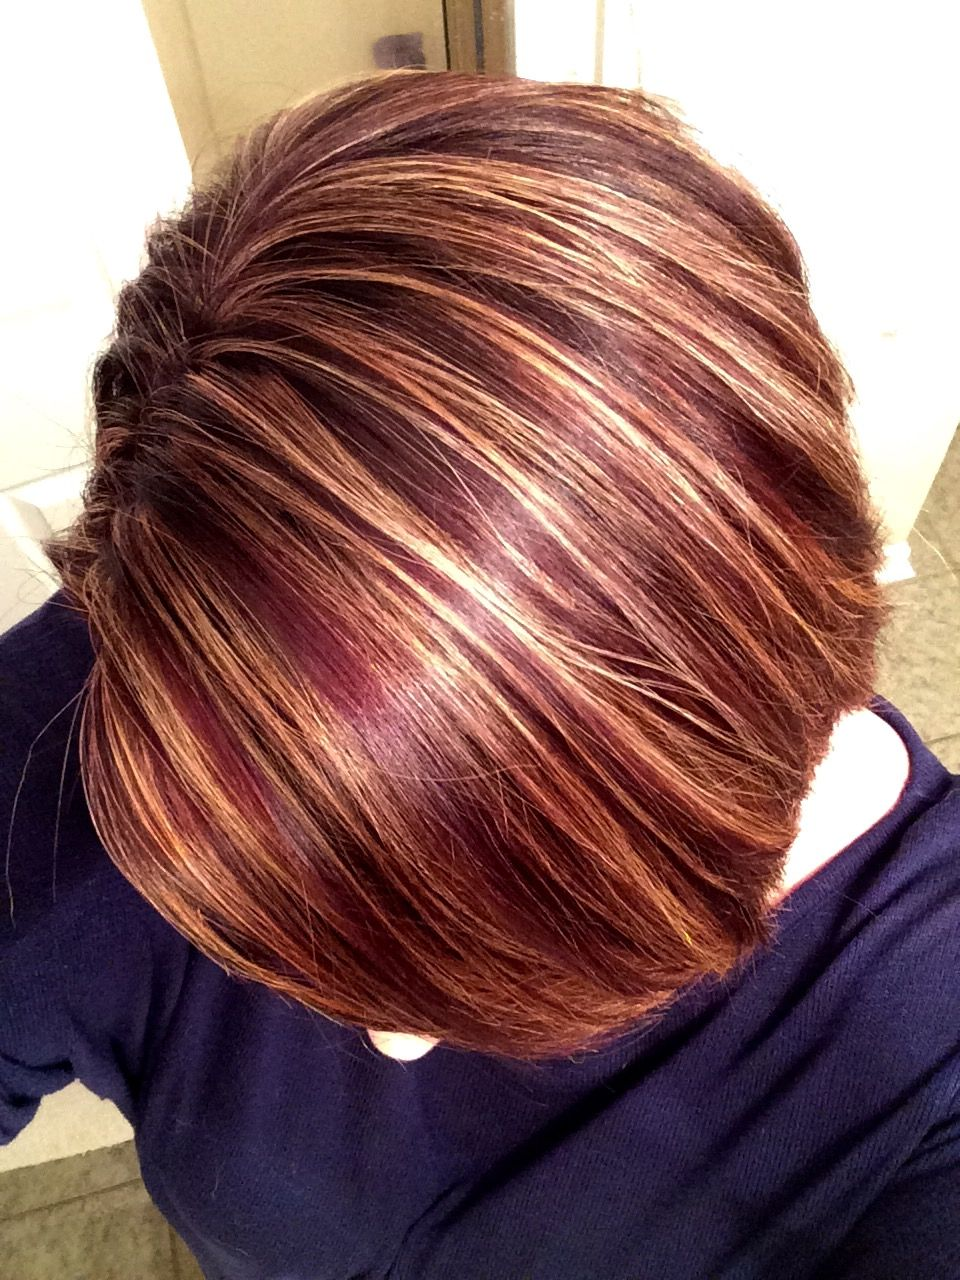 Hair Color Merlot Base With Blonde Highlights Merlot Hair Color Spring Hair Color Blonde Hair Color